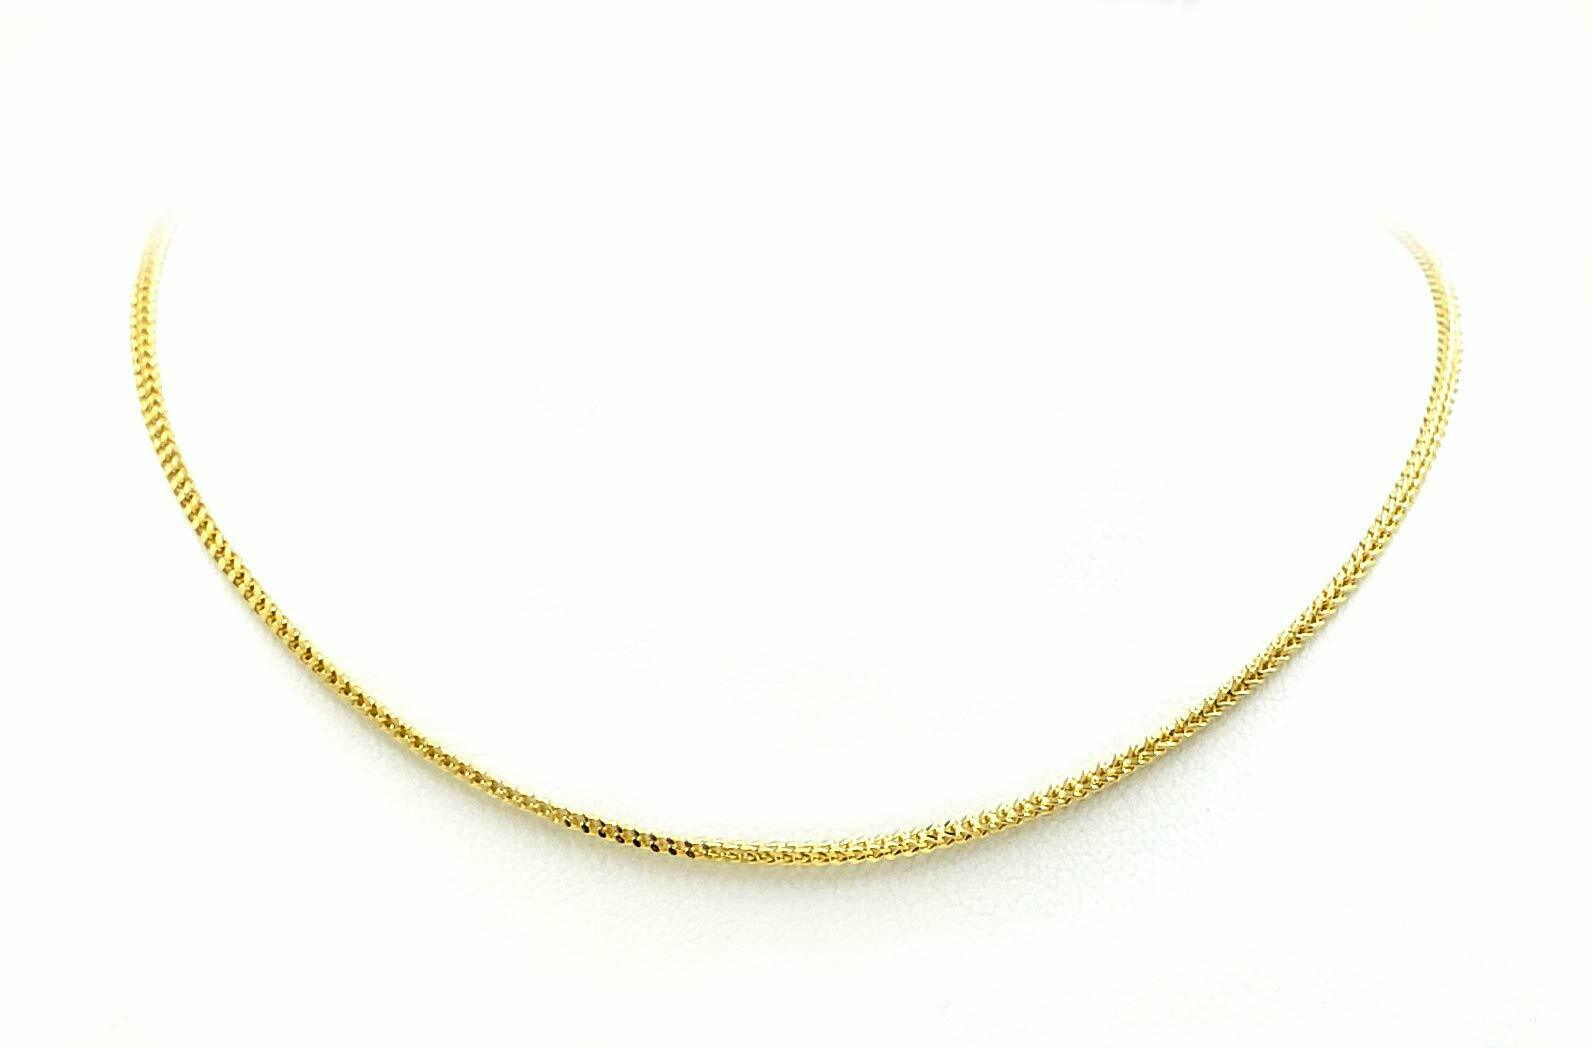 Real 10K Yellow Gold Hollow Franco Men/Women Chain/Necklace 2.0mm - 2.5mm